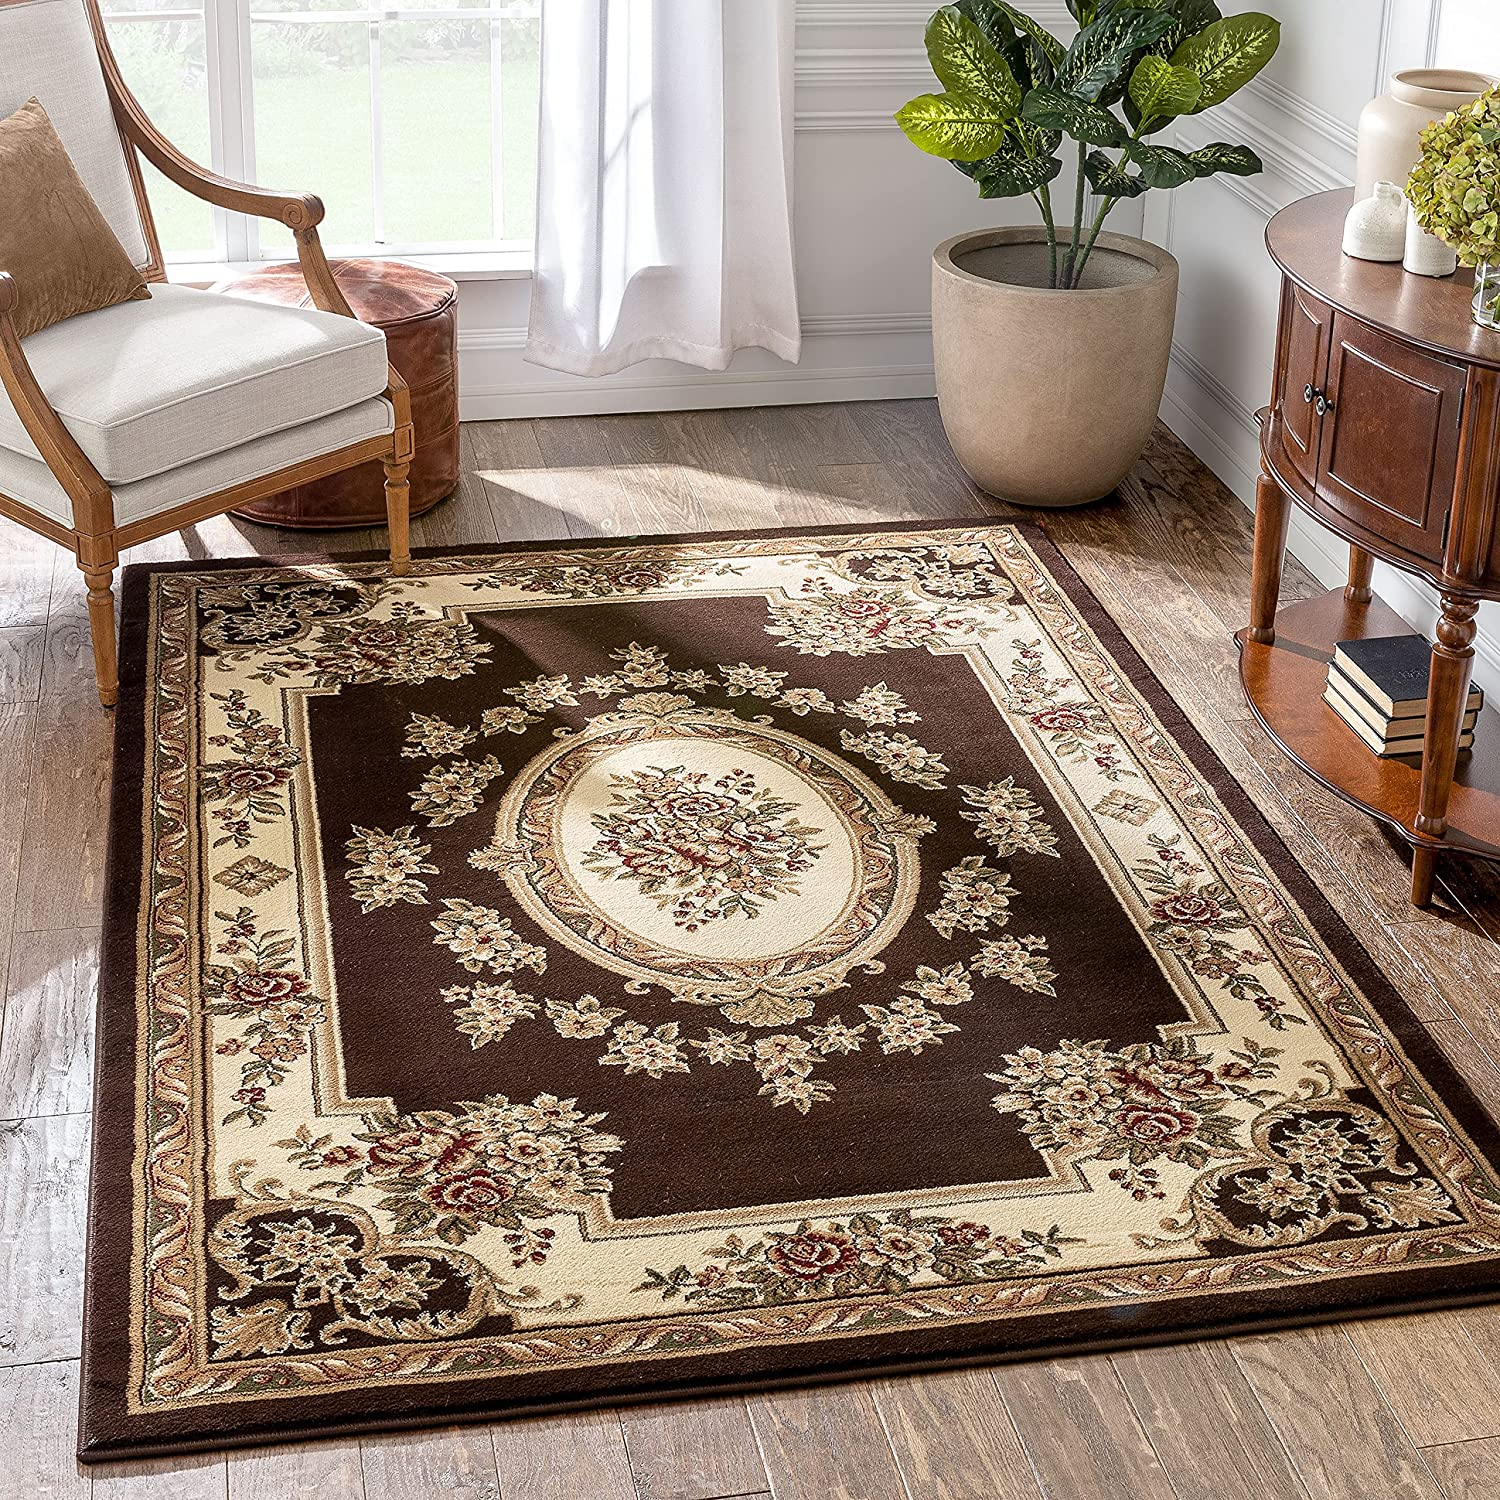 Well New Free Shipping Woven Timeless Le Petit Brown Traditional Palais Luxury goods Medallion